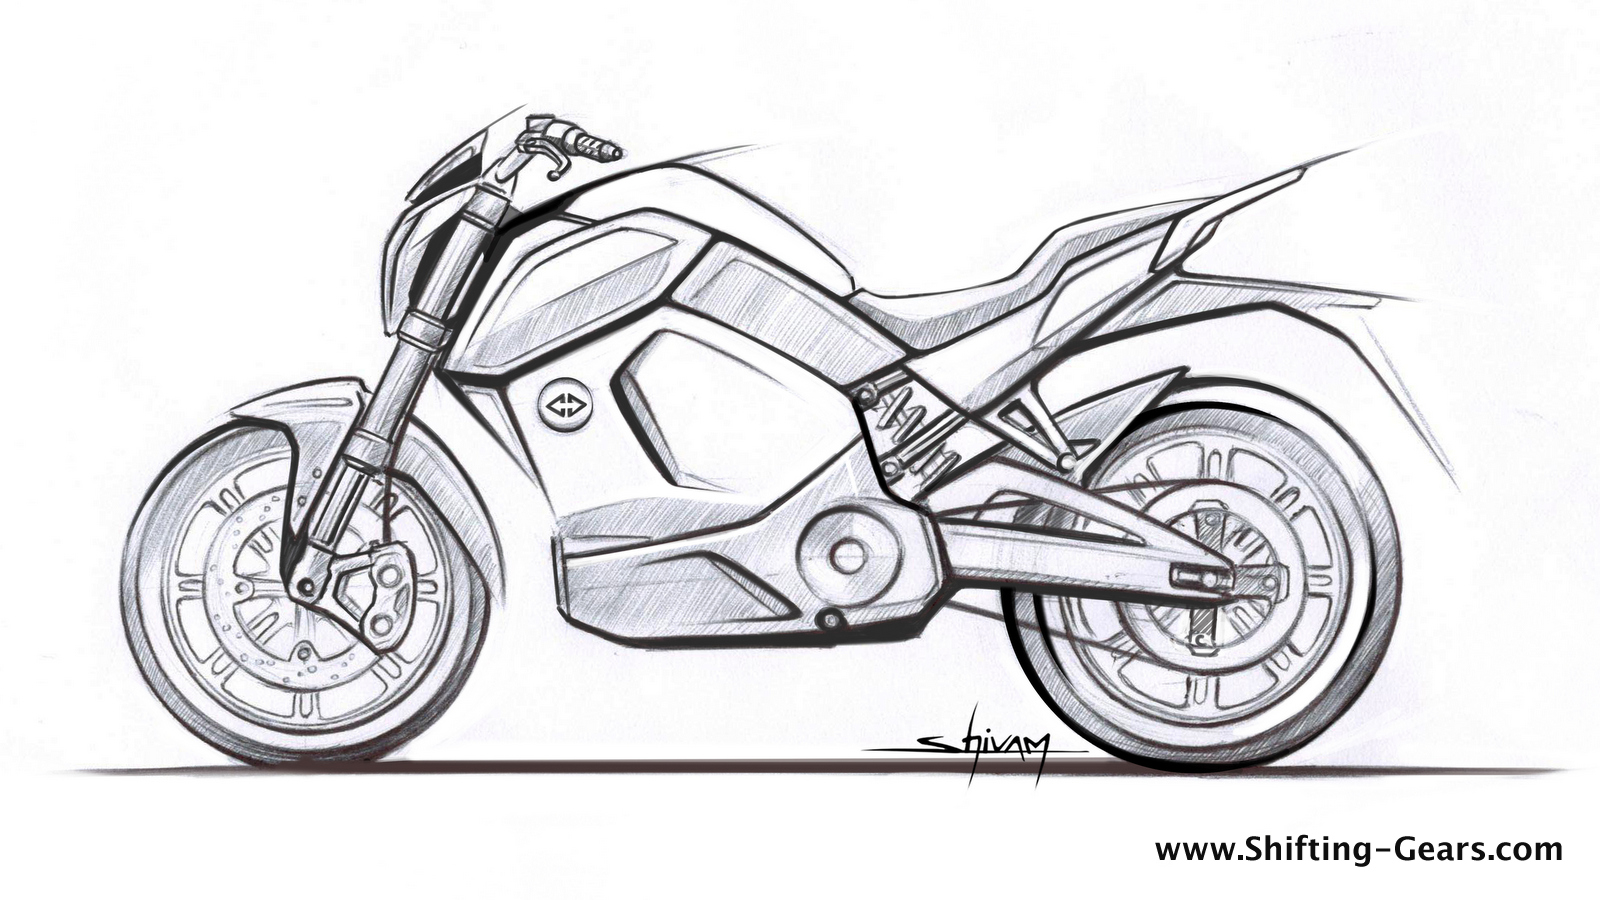 revolt intellicorp reveals design sketch of electric smart motorcycle  launch in june 2019